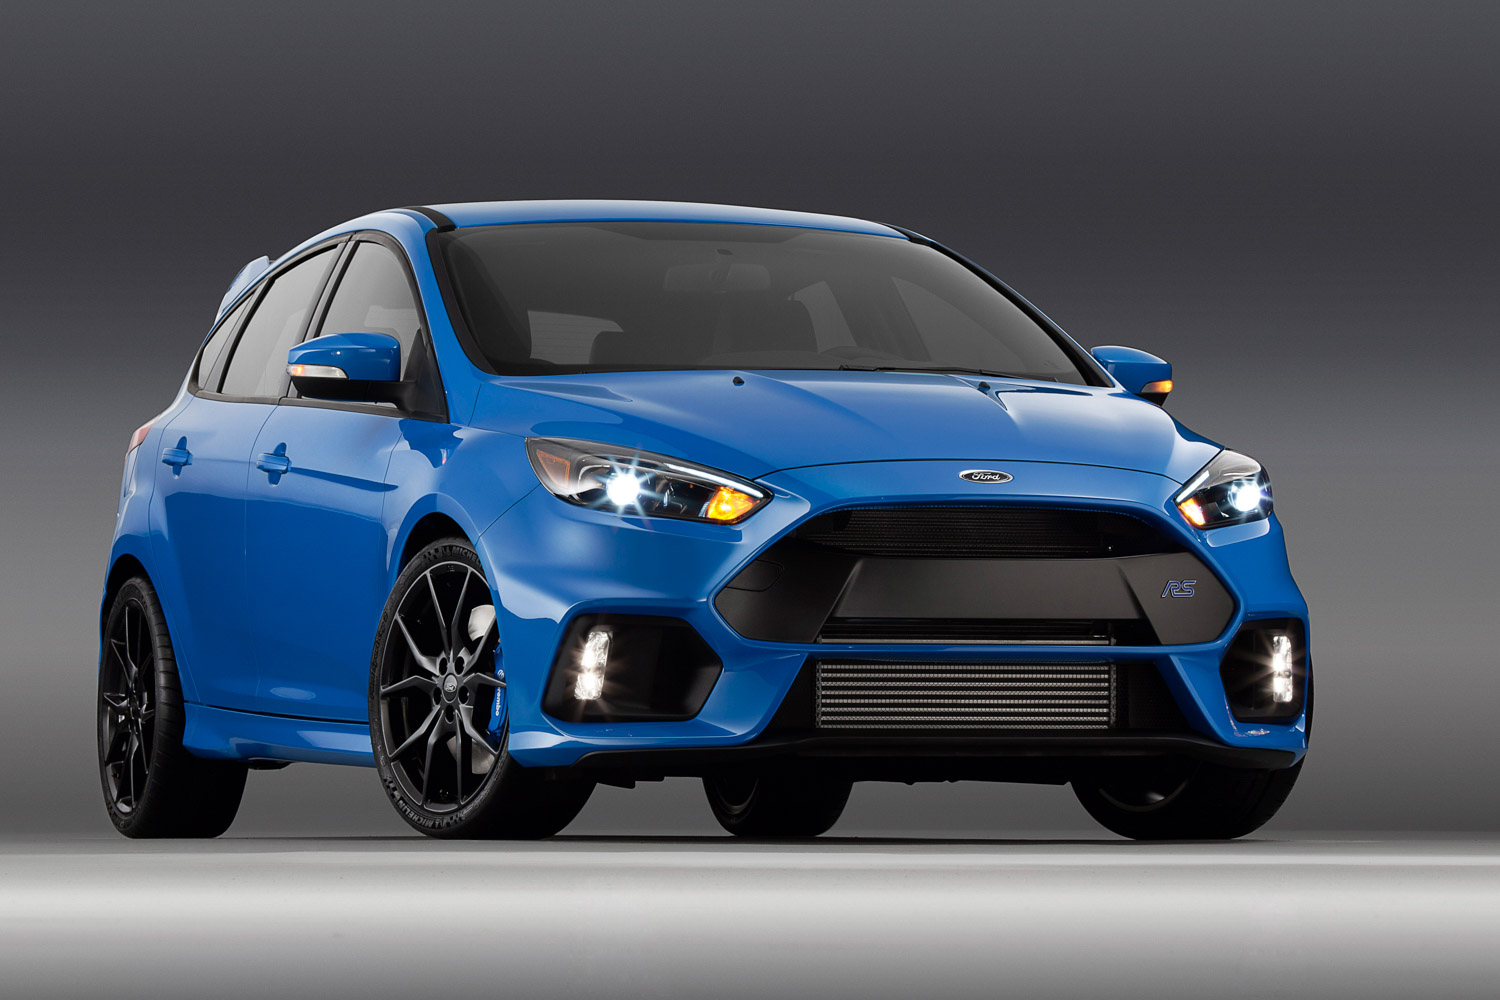 ford markup that a get skv focus car life rs photo price can without you dealer massive article